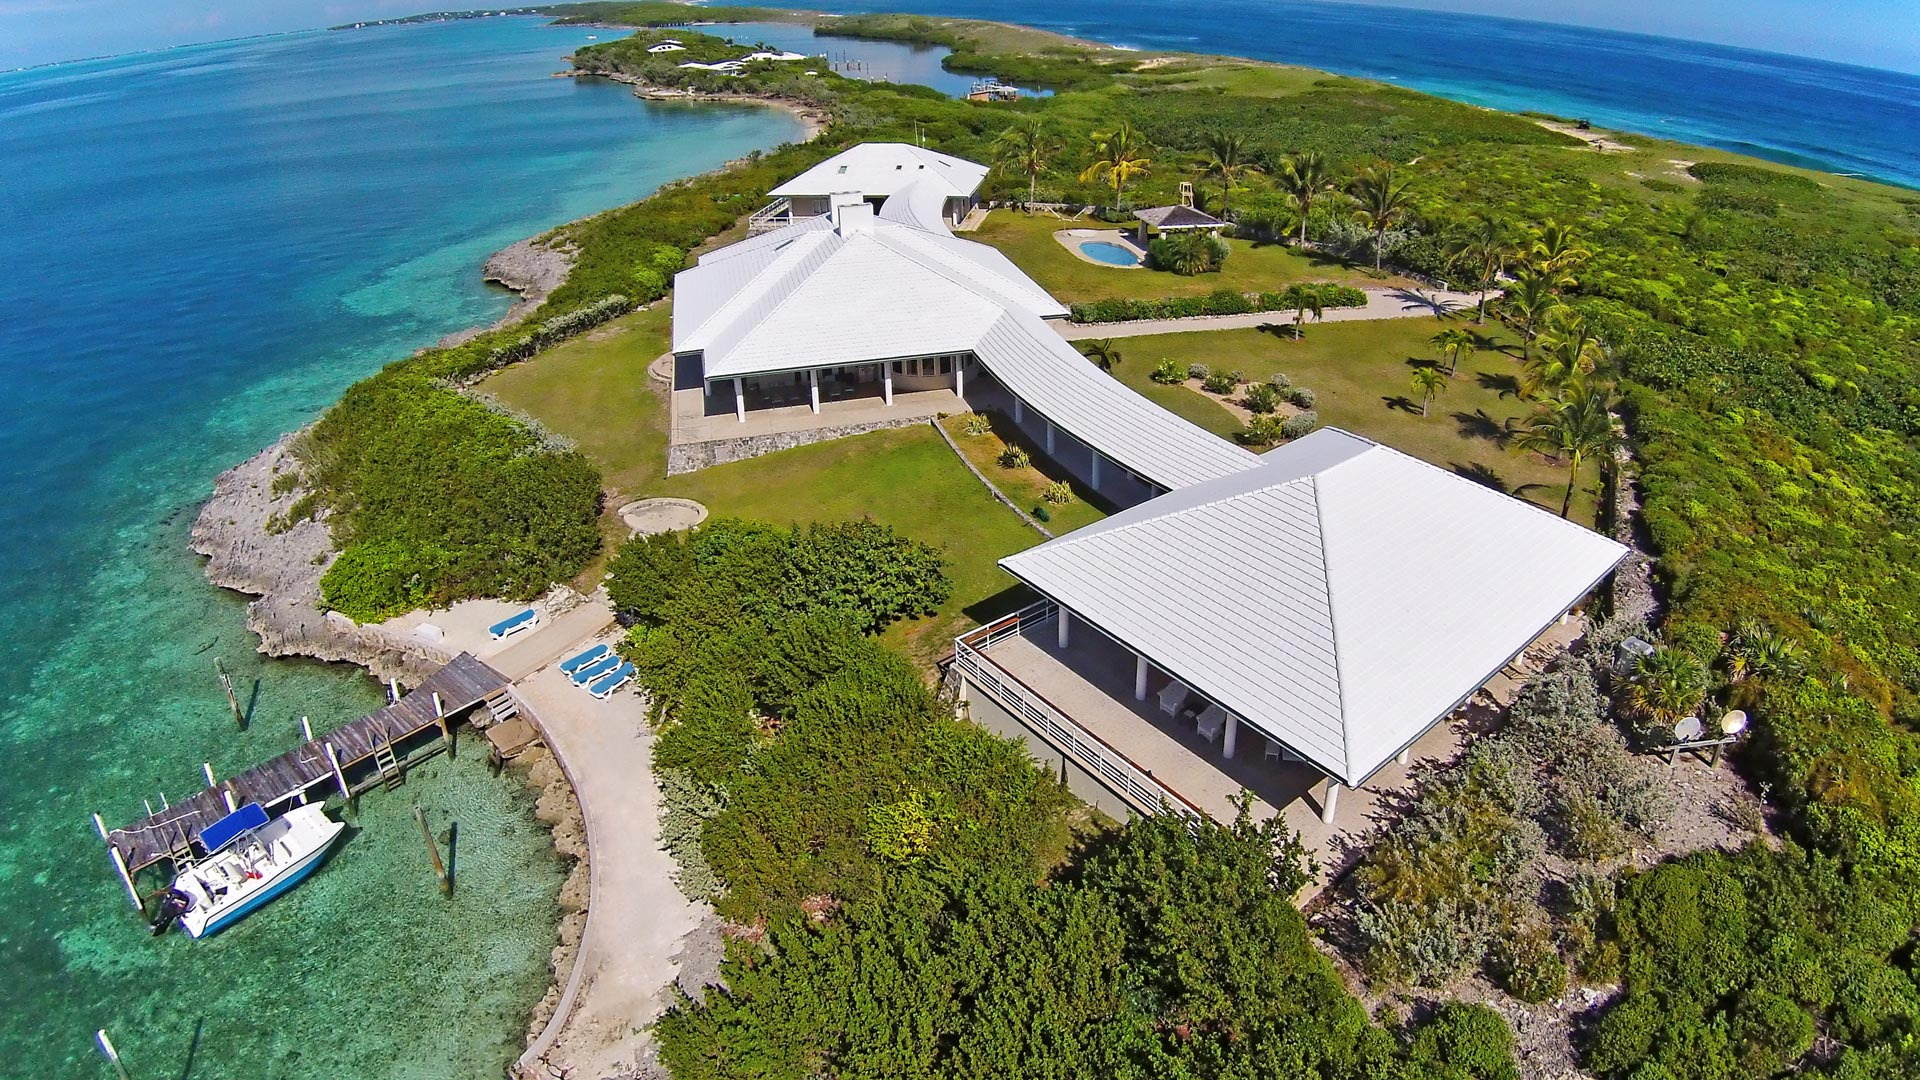 Tilloo pond the abacos bahamas caribbean private for Bahamas private island for sale